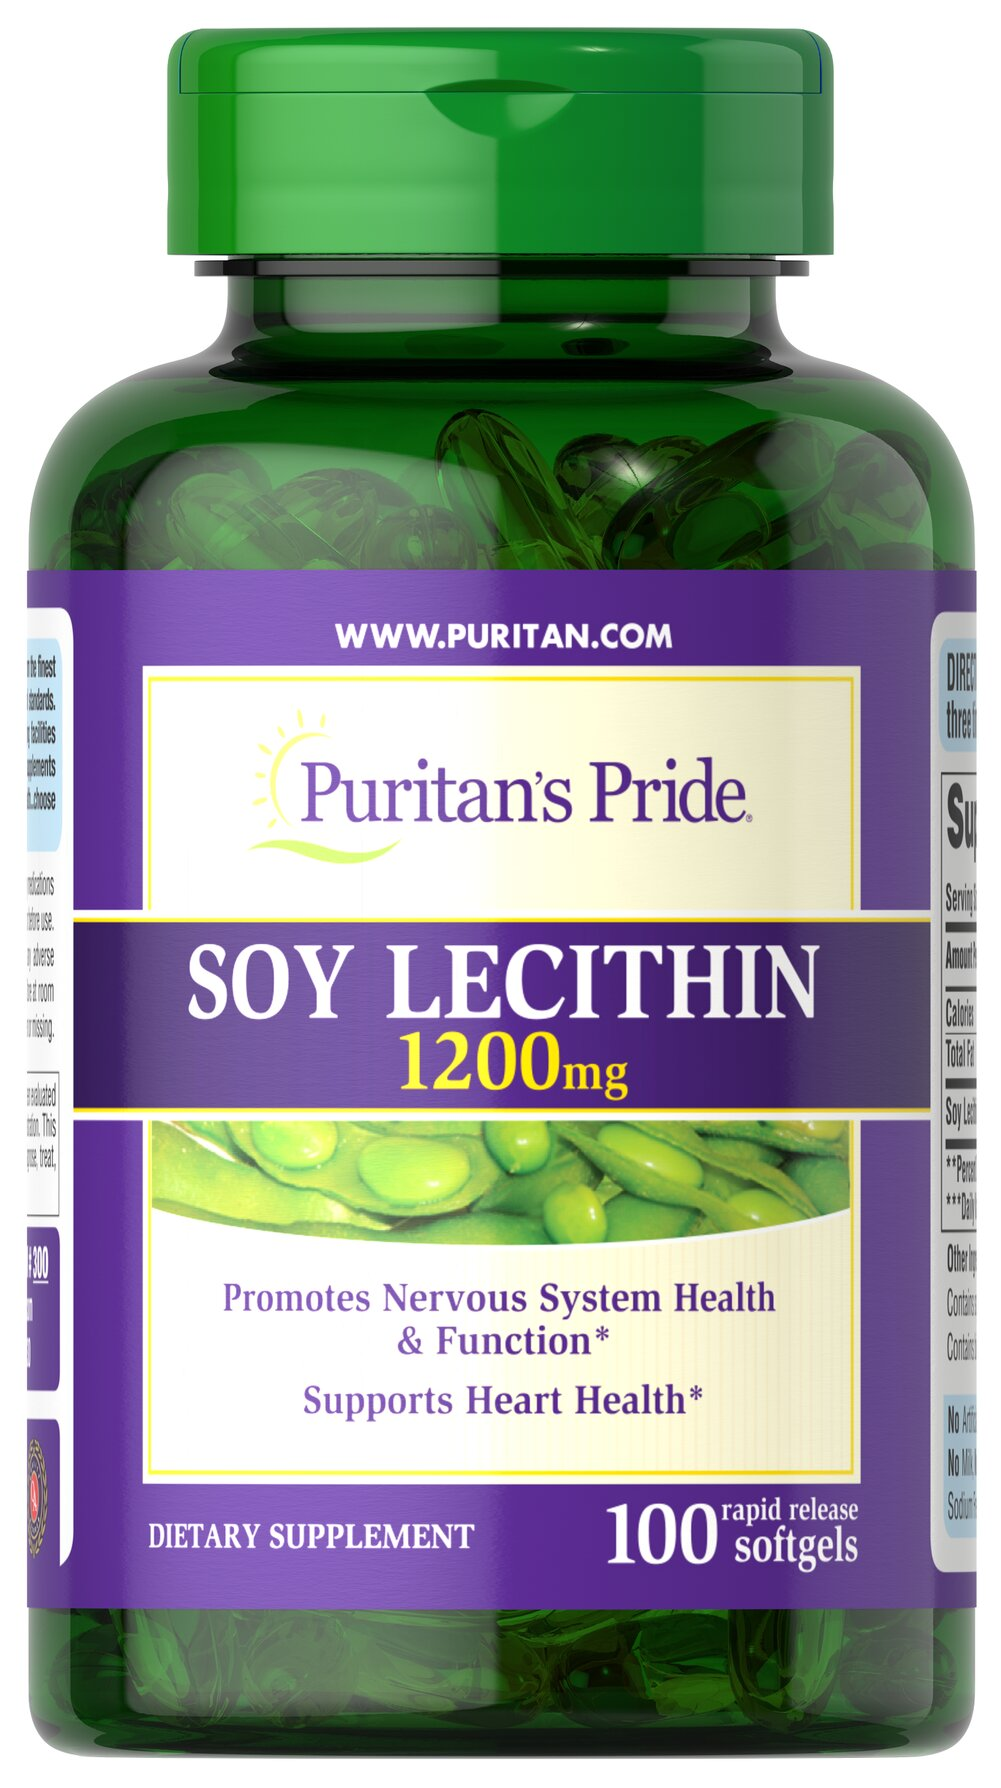 Soy Lecithin 1200 mg  100 Rapid Release Softgels 1200 mg $12.99